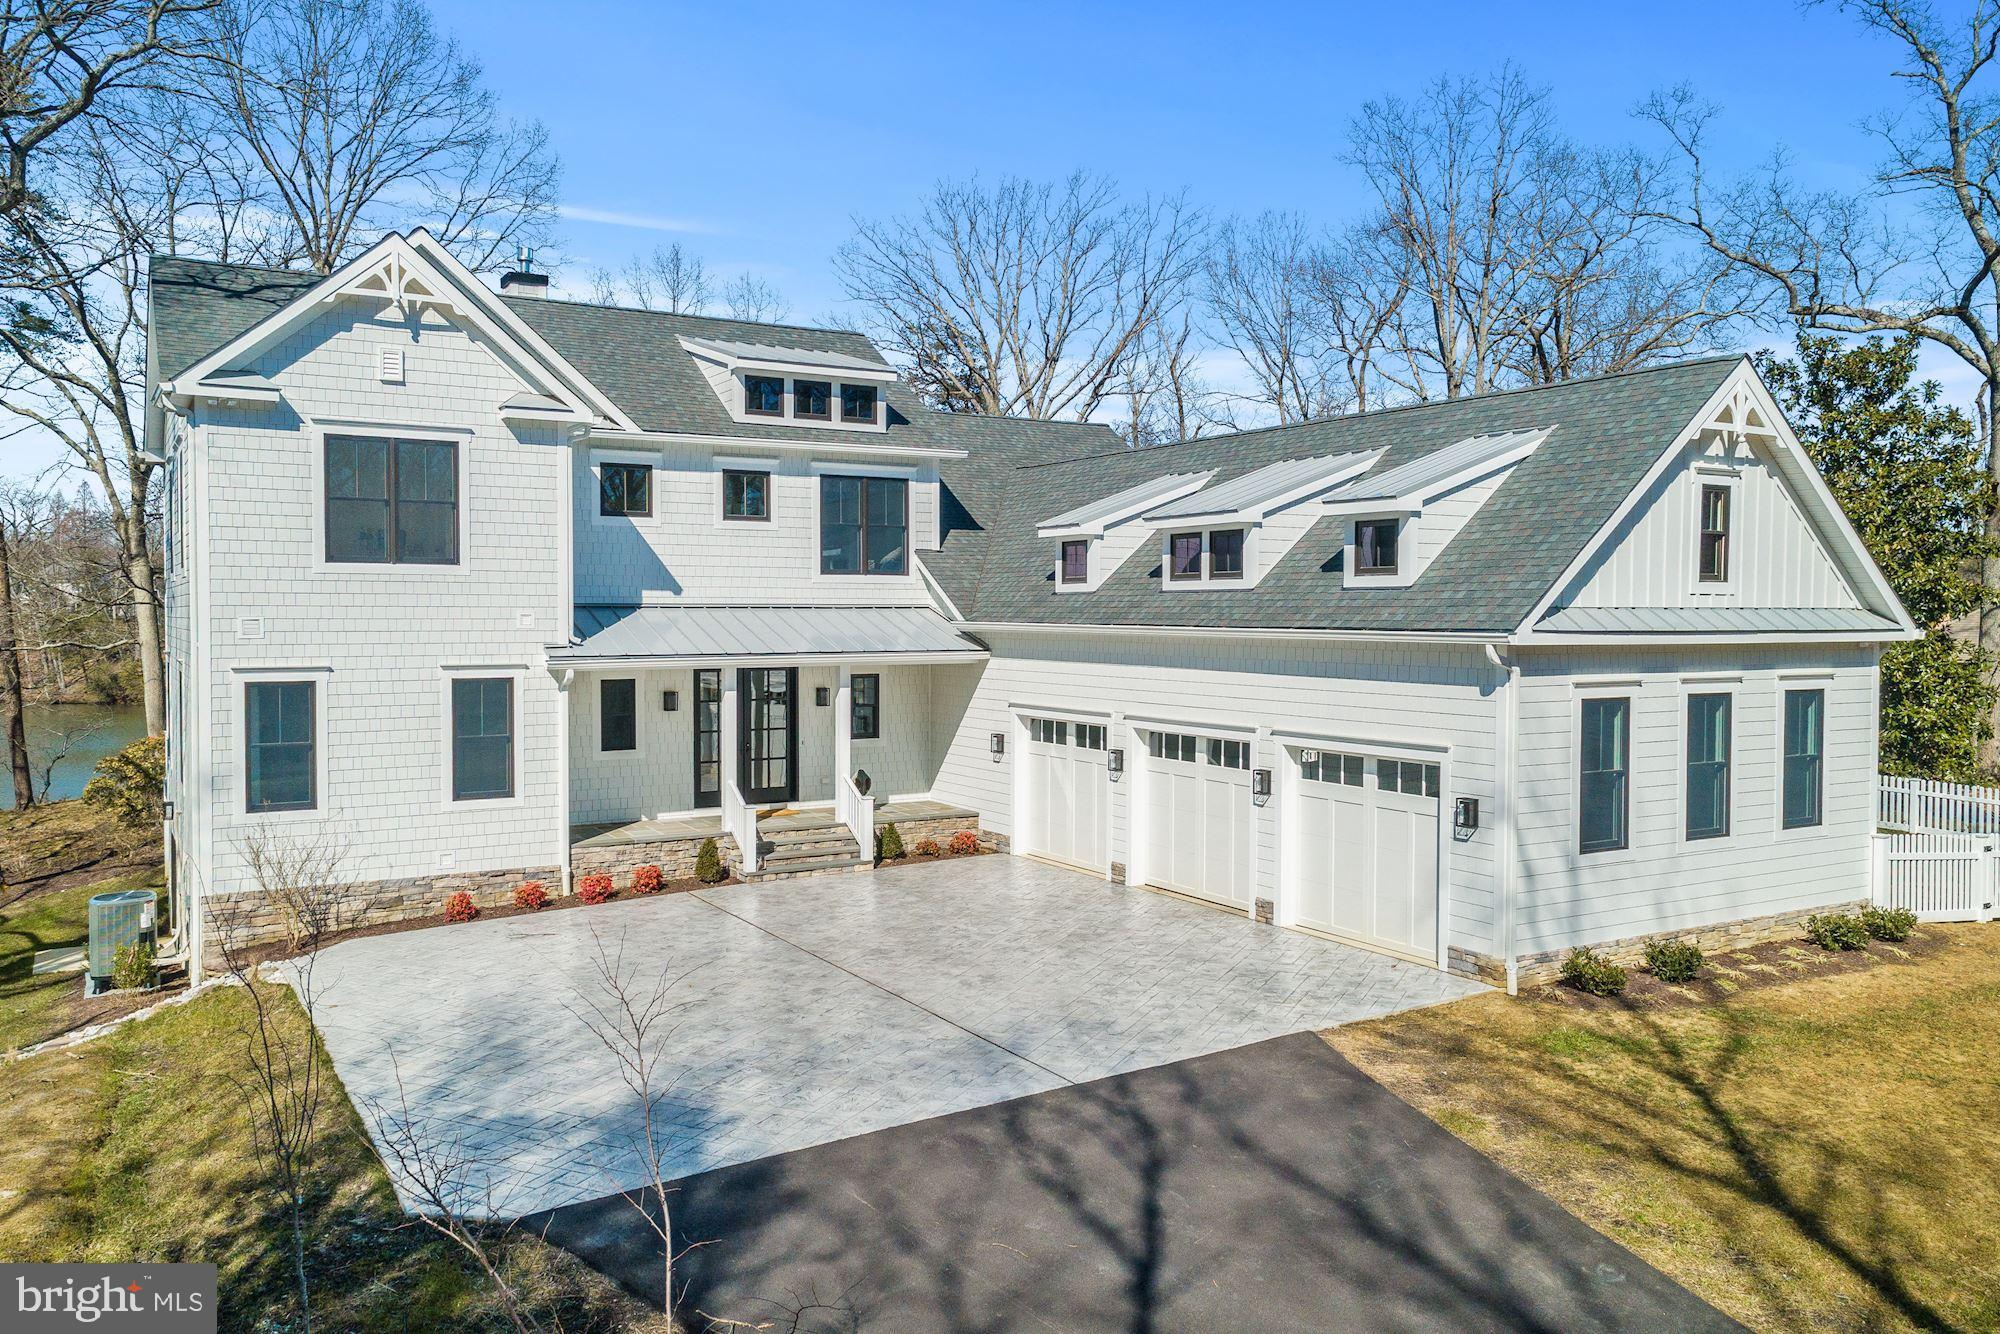 488 FERRY POINT ROAD, ANNAPOLIS, MD 21403